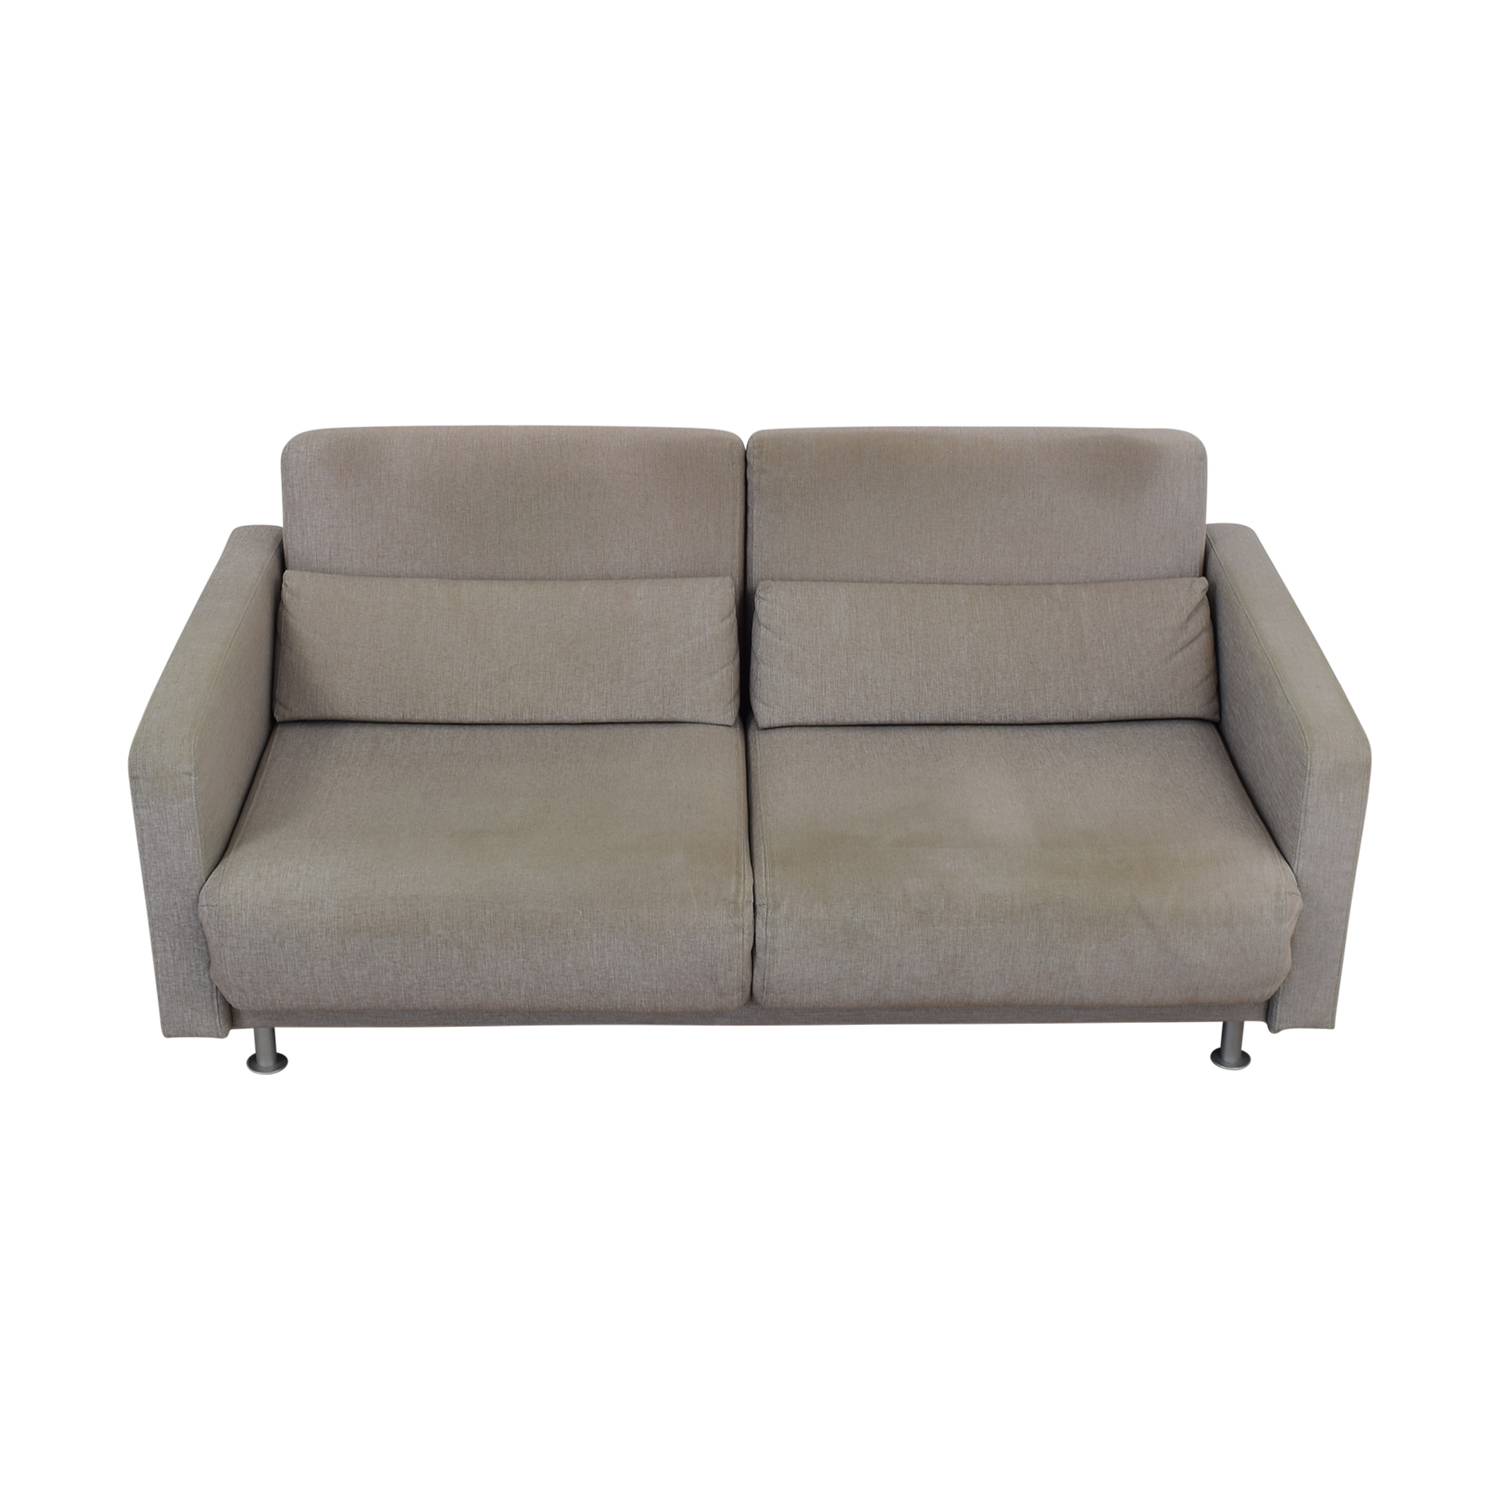 82% OFF - BoConcept BoConcept Melo Grey Sofa Queen Bed / Sofas